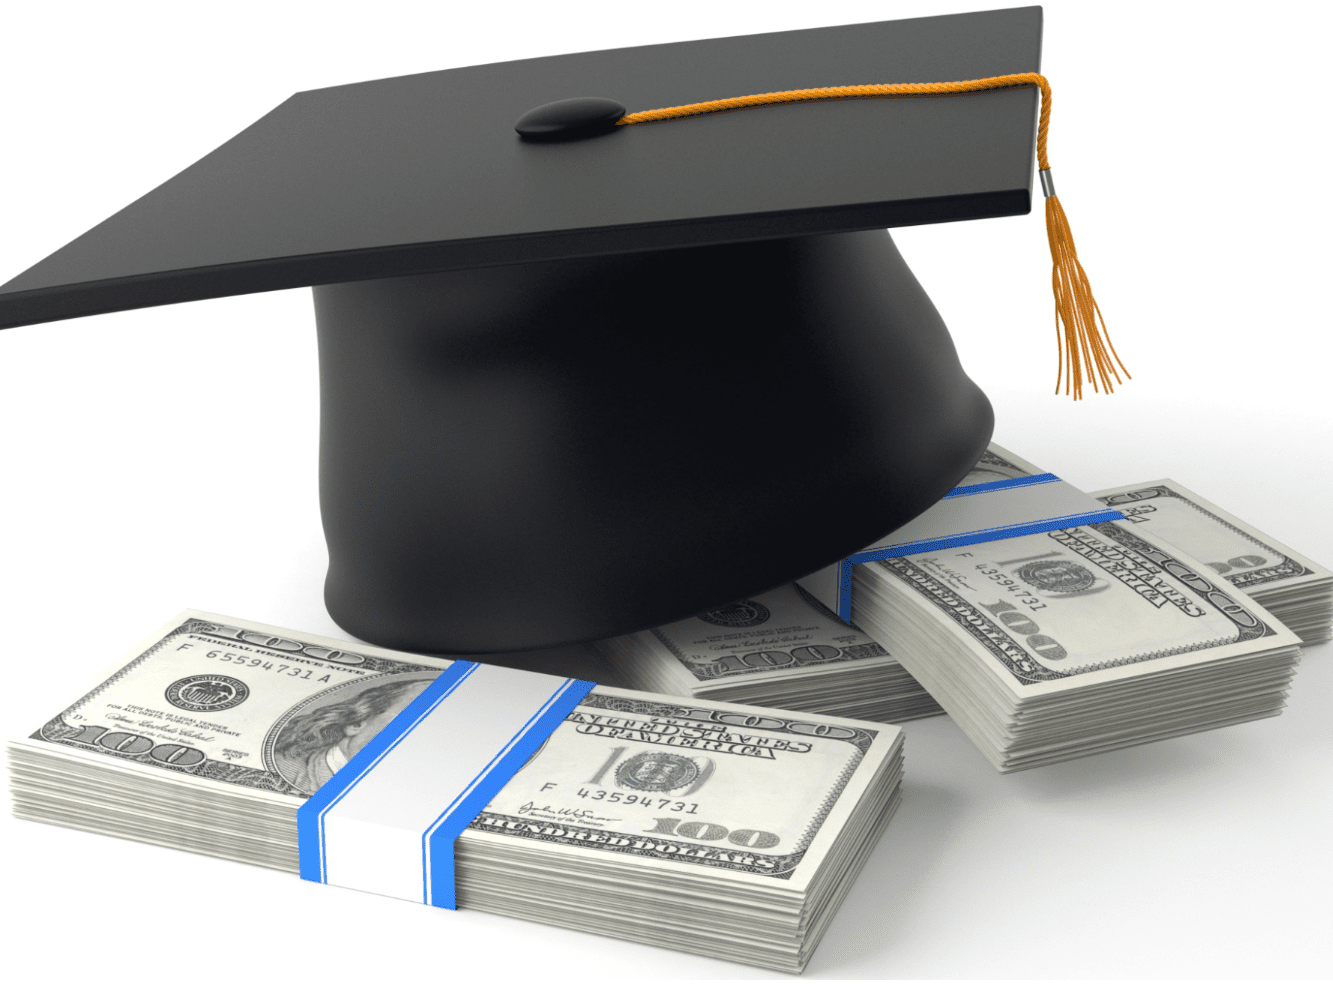 2021 Local Scholarship Awards Application (deadline March 15, 2021)